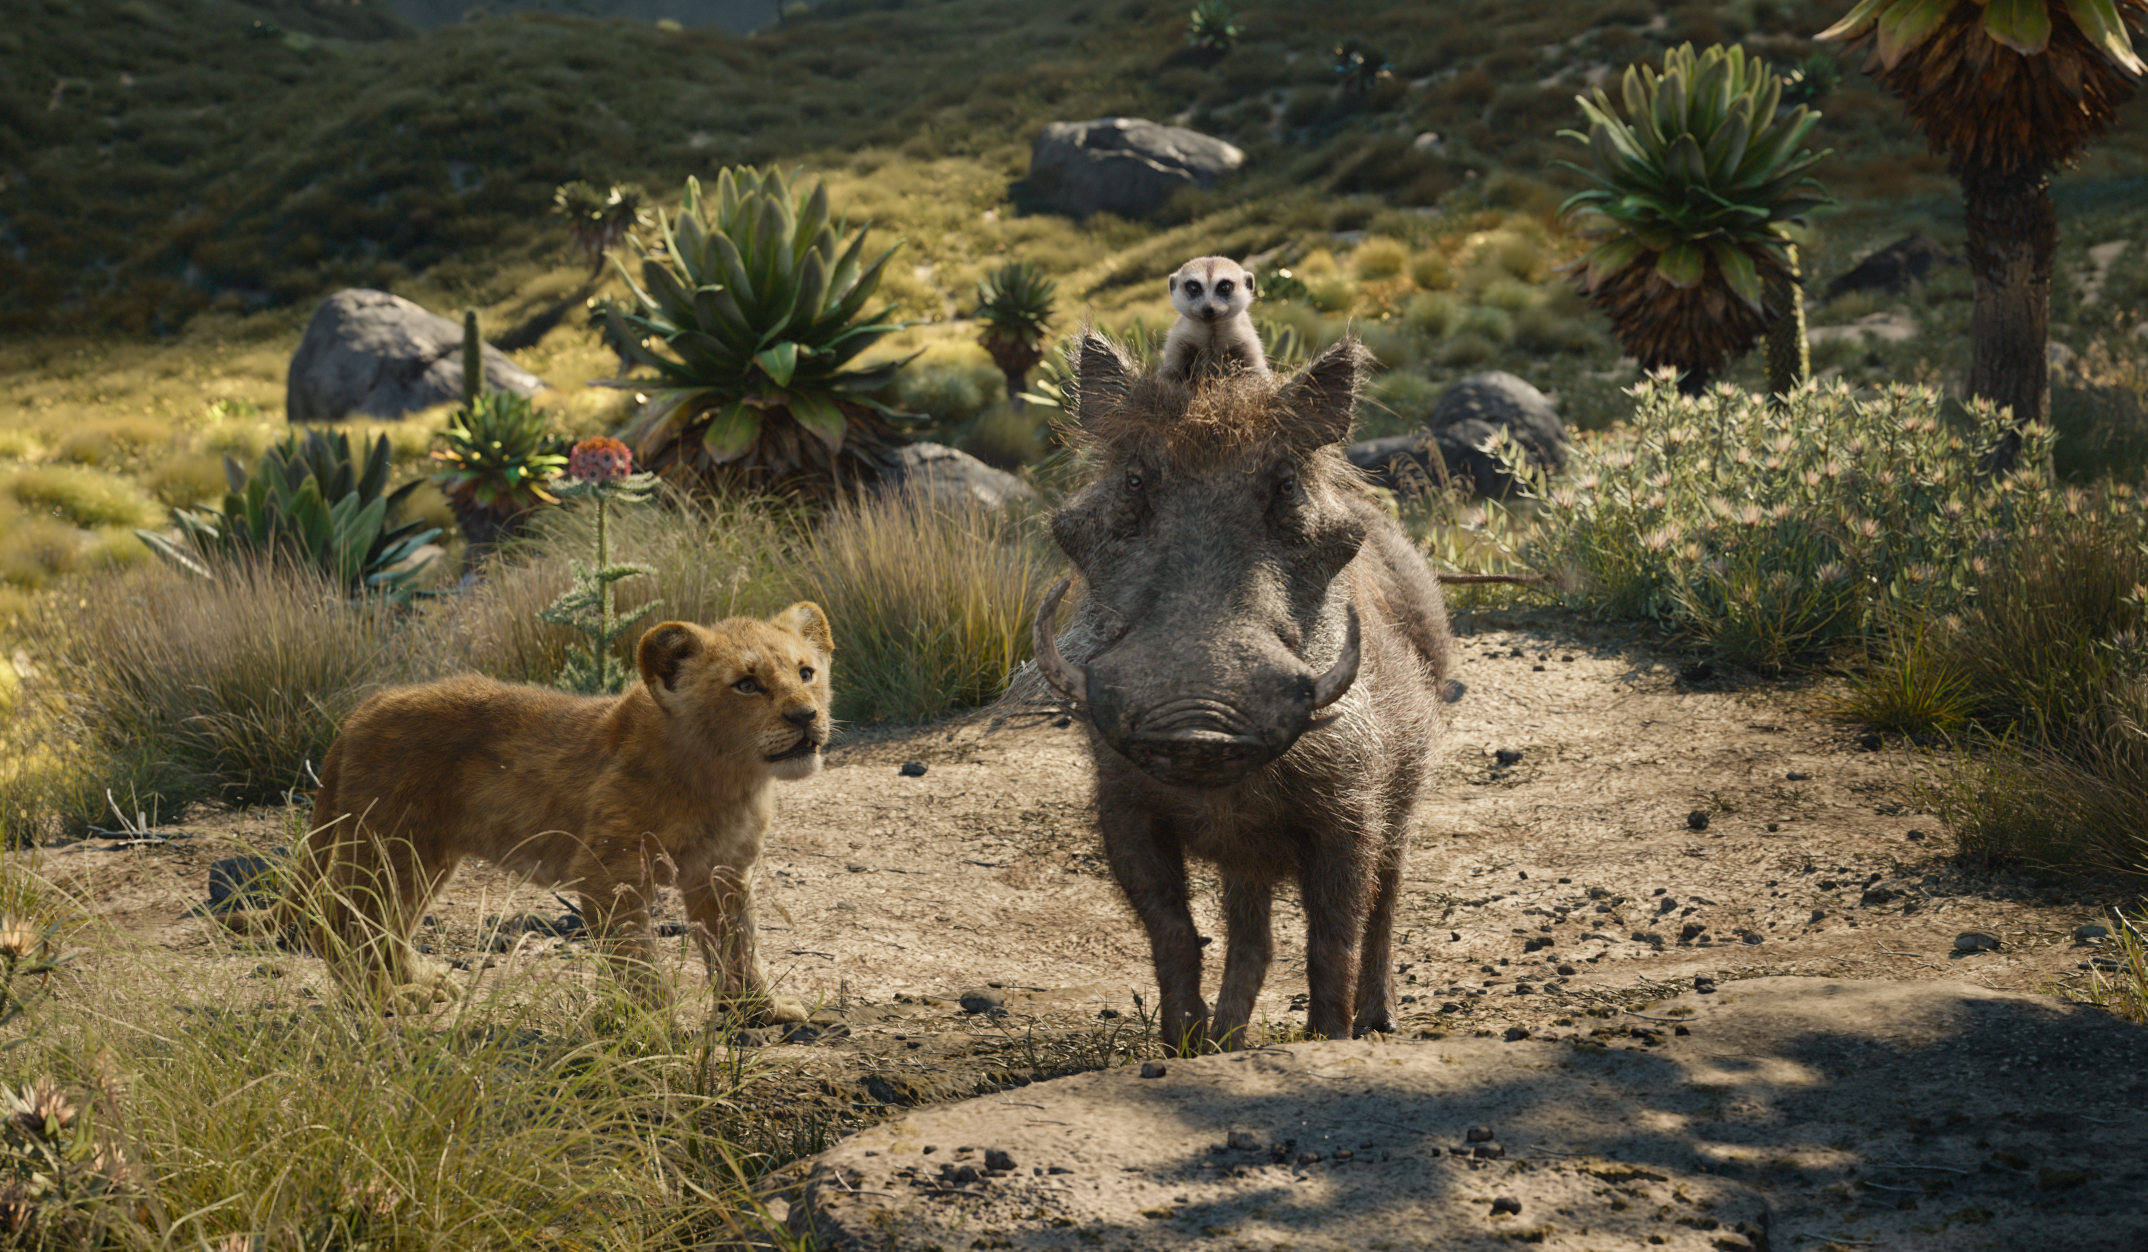 """THE LION KING - Featuring the voices of JD McCrary as Young Simba, Billy Eichner as Timon and Seth Rogen as Pumbaa, Disney's """"The Lion King"""" is directed by Jon Favreau. In theaters July 19, 2019. © 2019 Disney Enterprises, Inc. All Rights Reserved."""